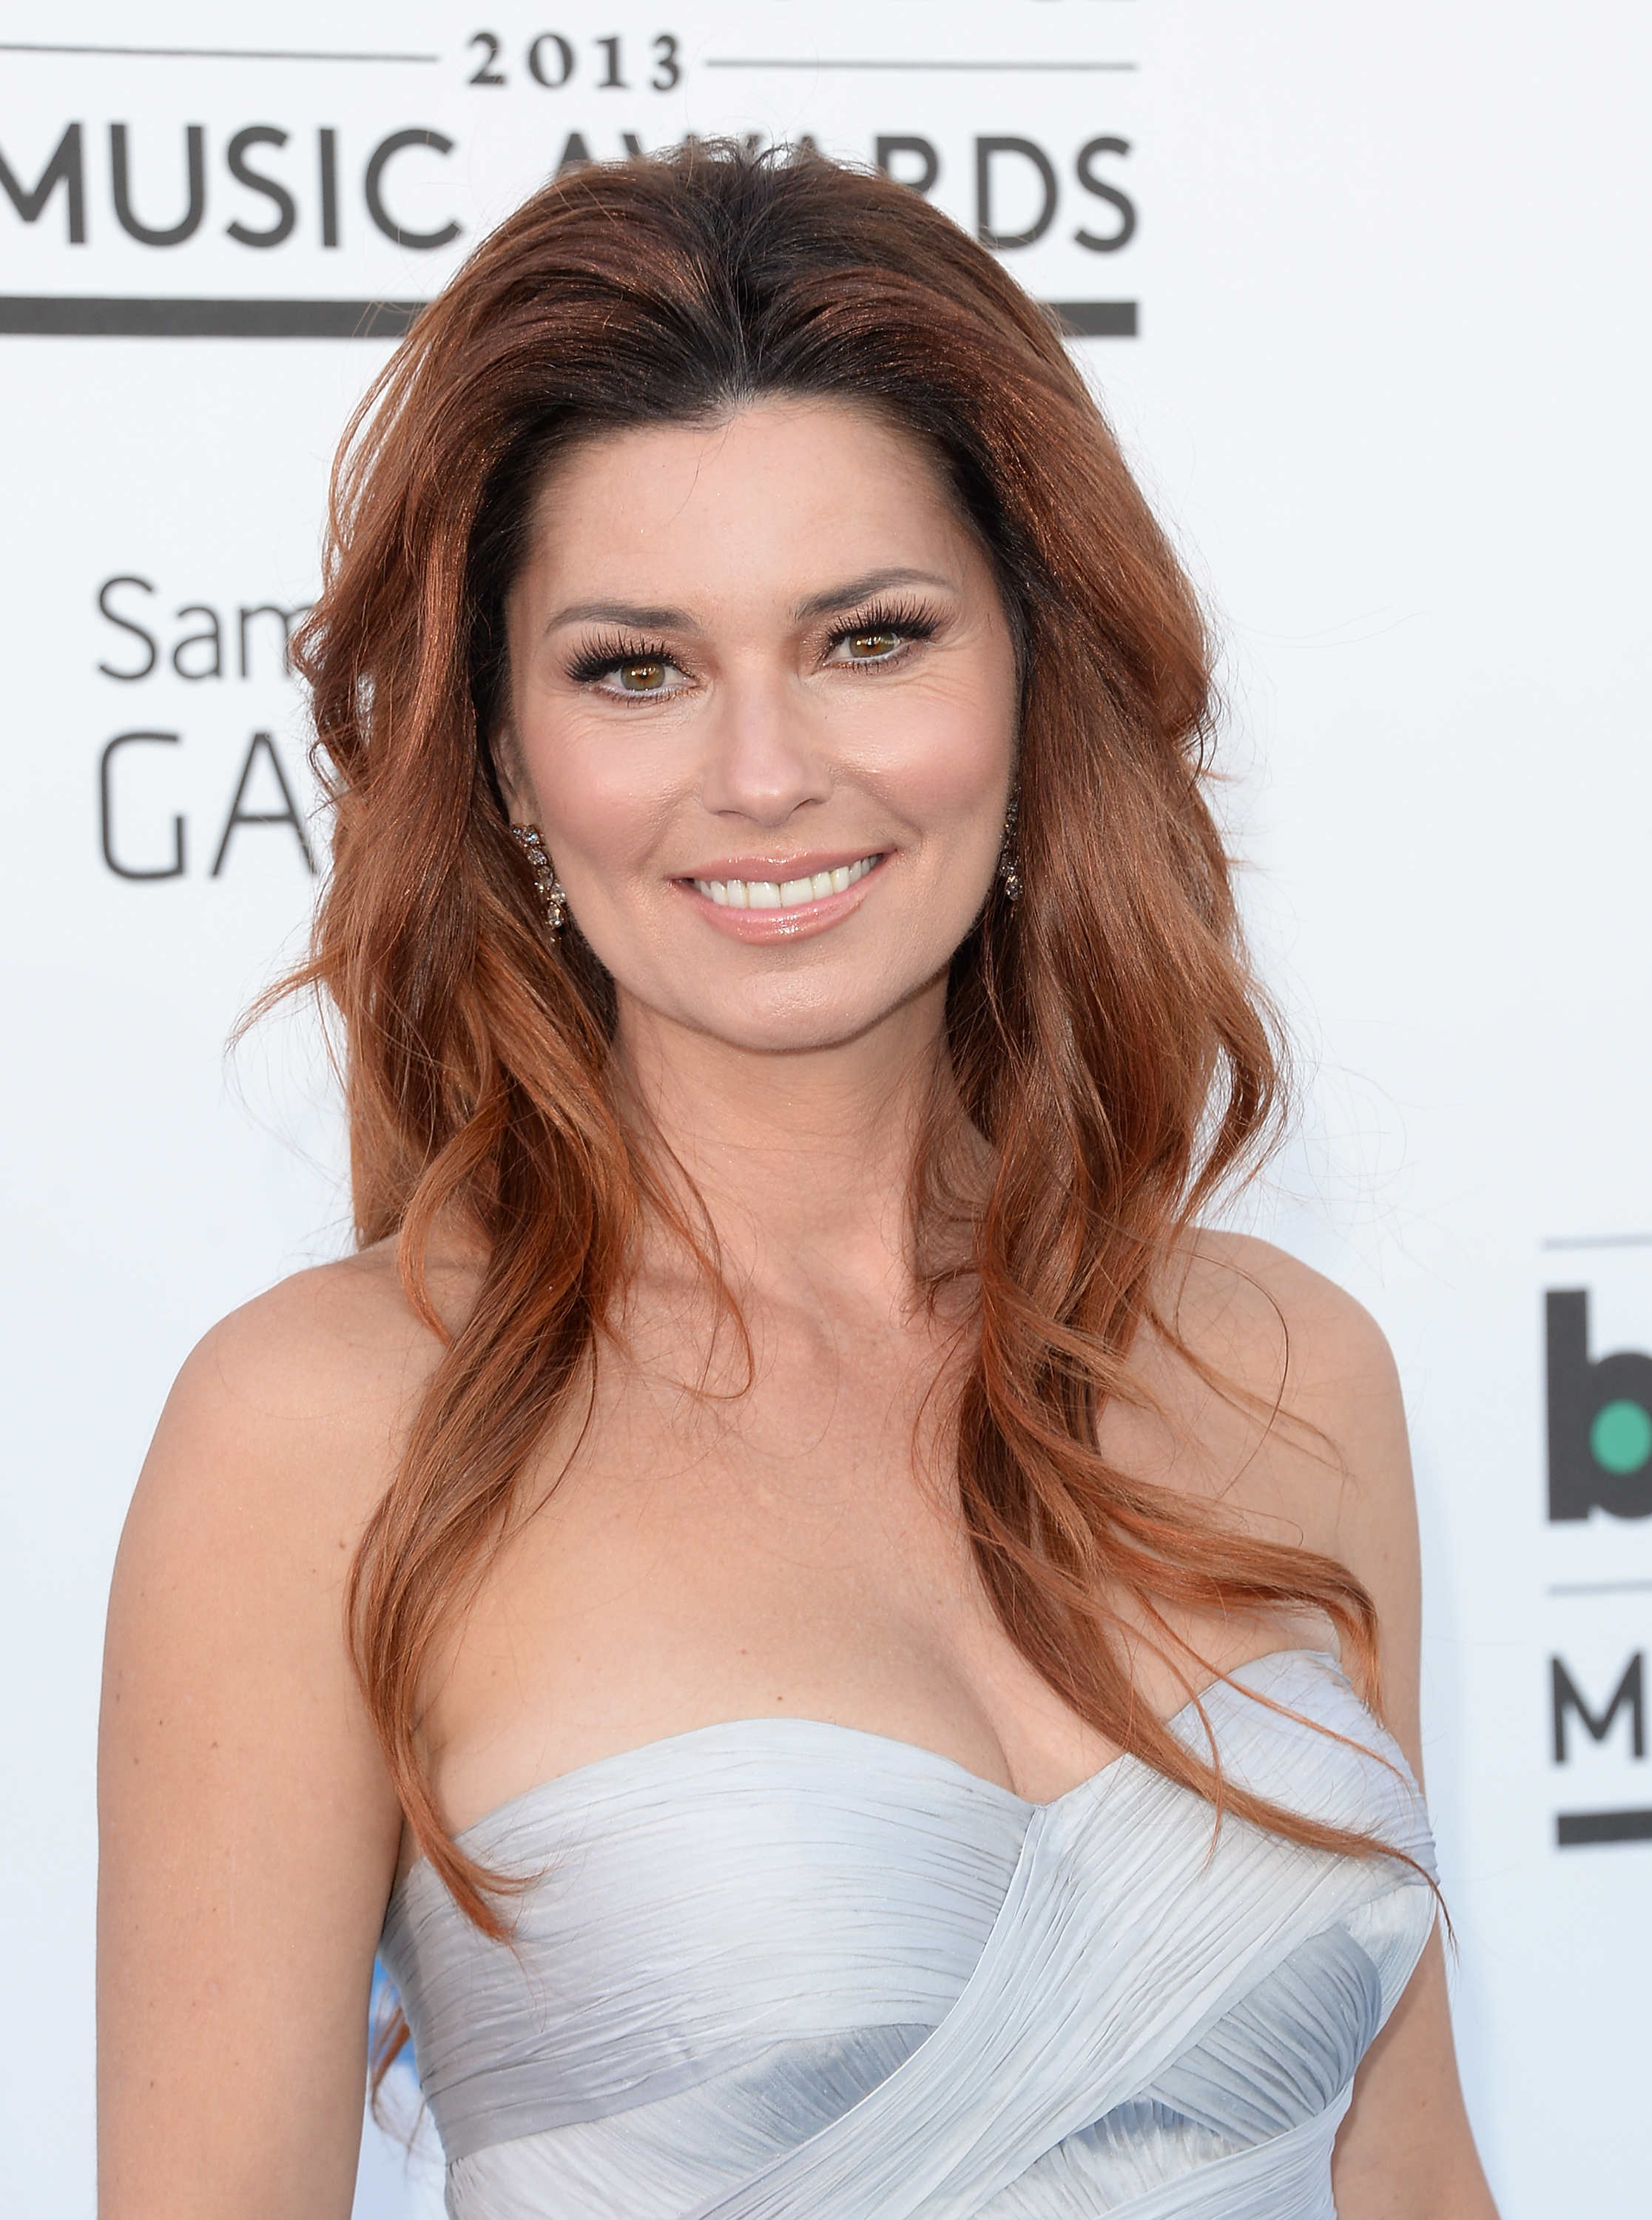 Shania Twain Cancels Several Concerts Due to Respiratory ...